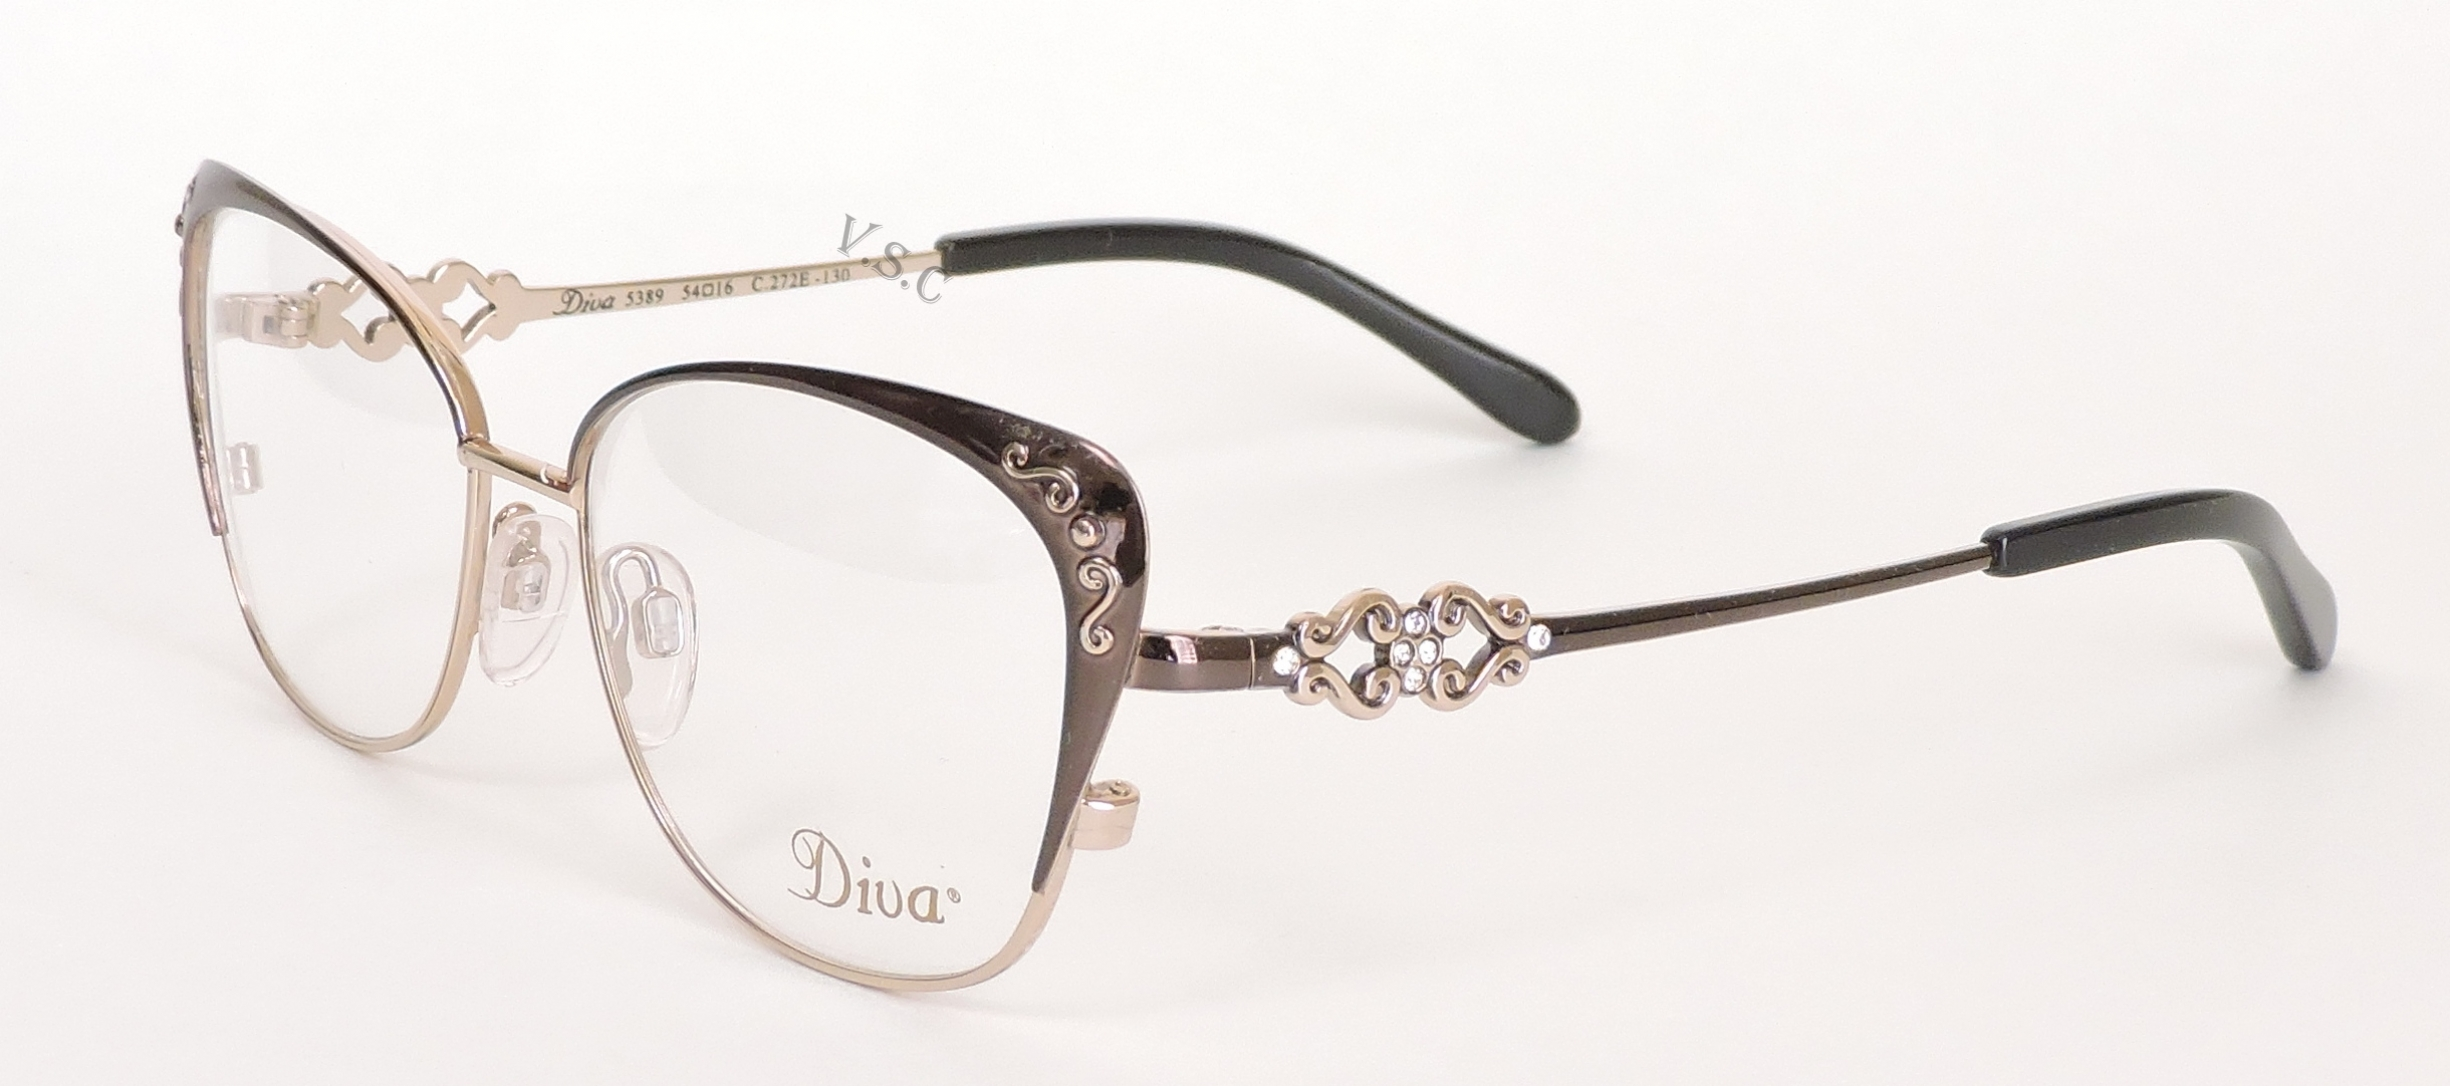 DIVA 5389 in color 272E